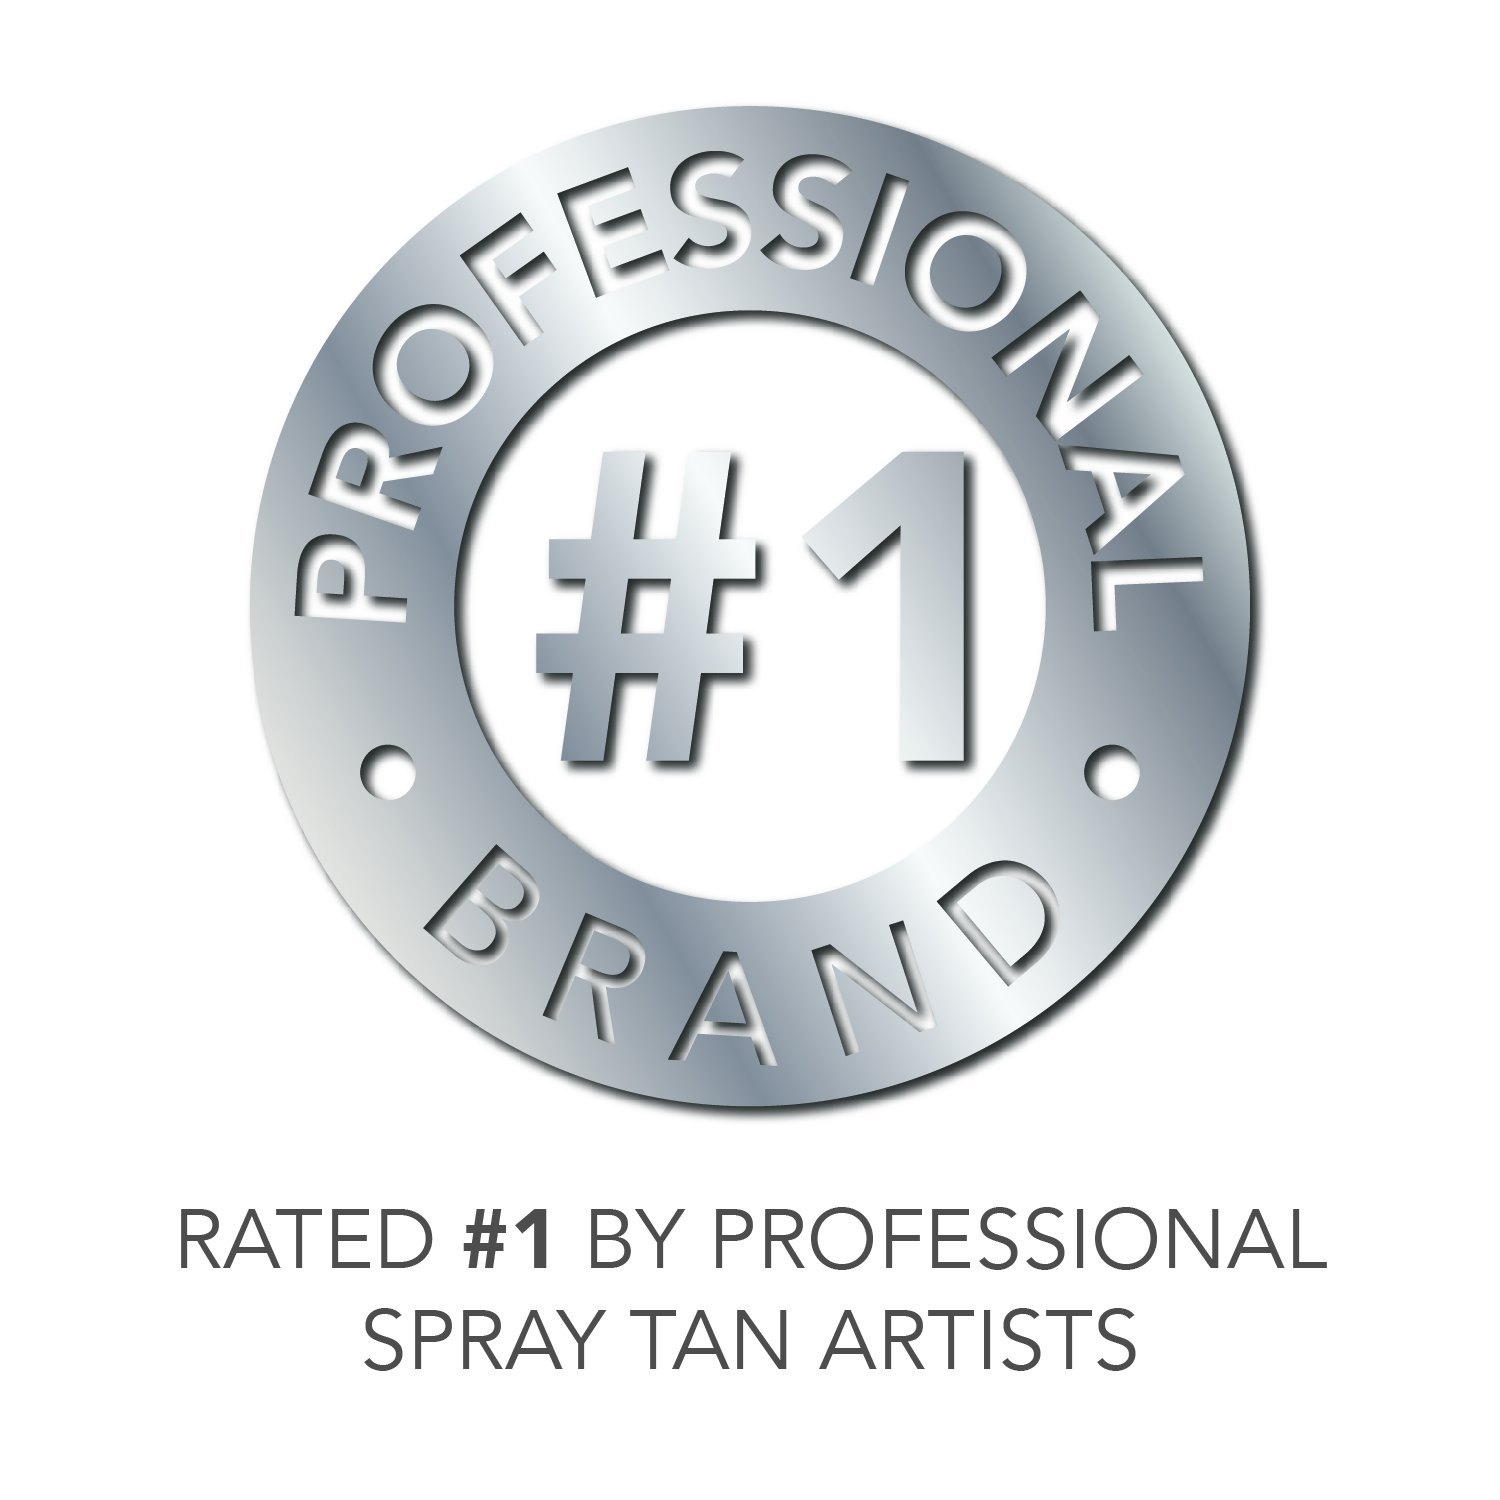 Norvell Sunless Kit - Z3000 Professional Mobile HVLP Spray Tan Airbrush Machine System + 8 oz Tanning Solutions in Ultra Vivid 'Cosmo', Venetian & Dark + Norvell Training Program (Retail Value $1,150) by Norvell (Image #7)